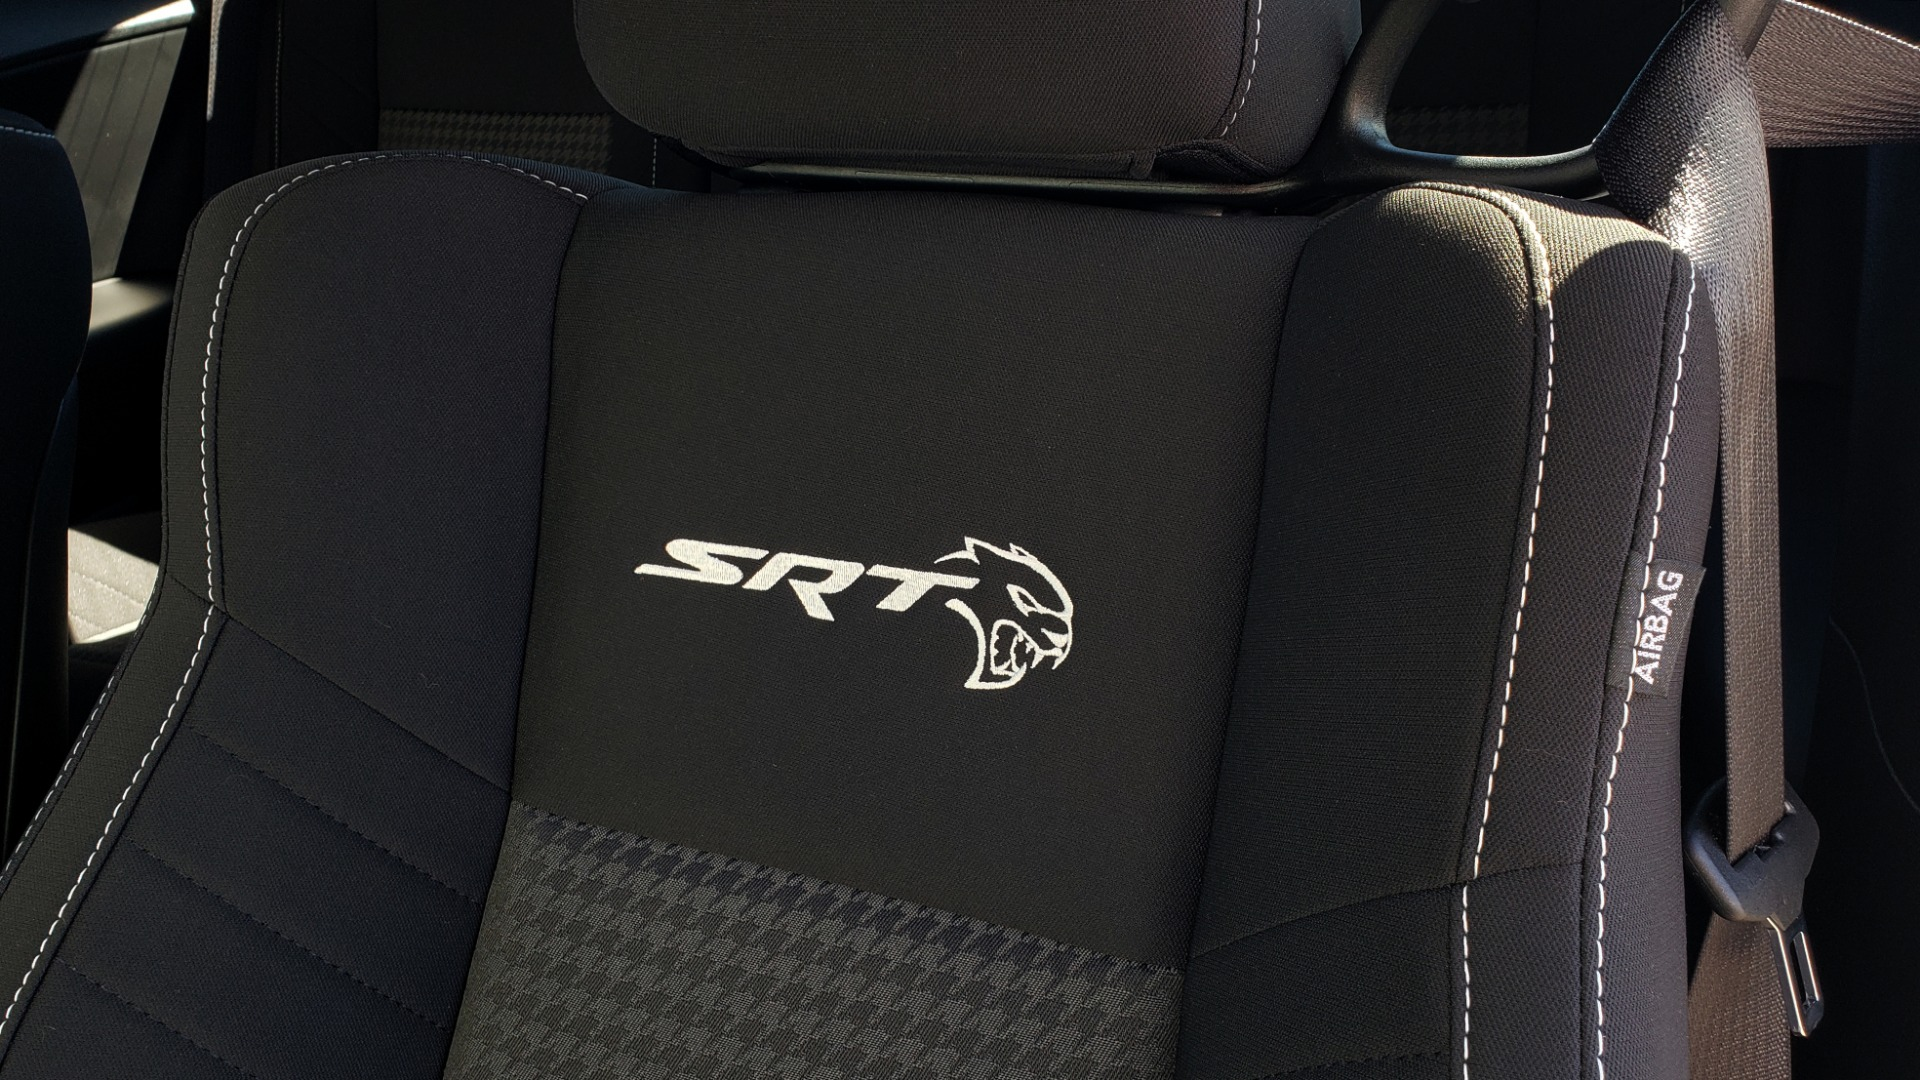 Used 2020 Dodge CHALLENGER SRT HELLCAT (717HP) / NAV / AUTO / CLOTH / REARVIEW / LOW MILES for sale Sold at Formula Imports in Charlotte NC 28227 41